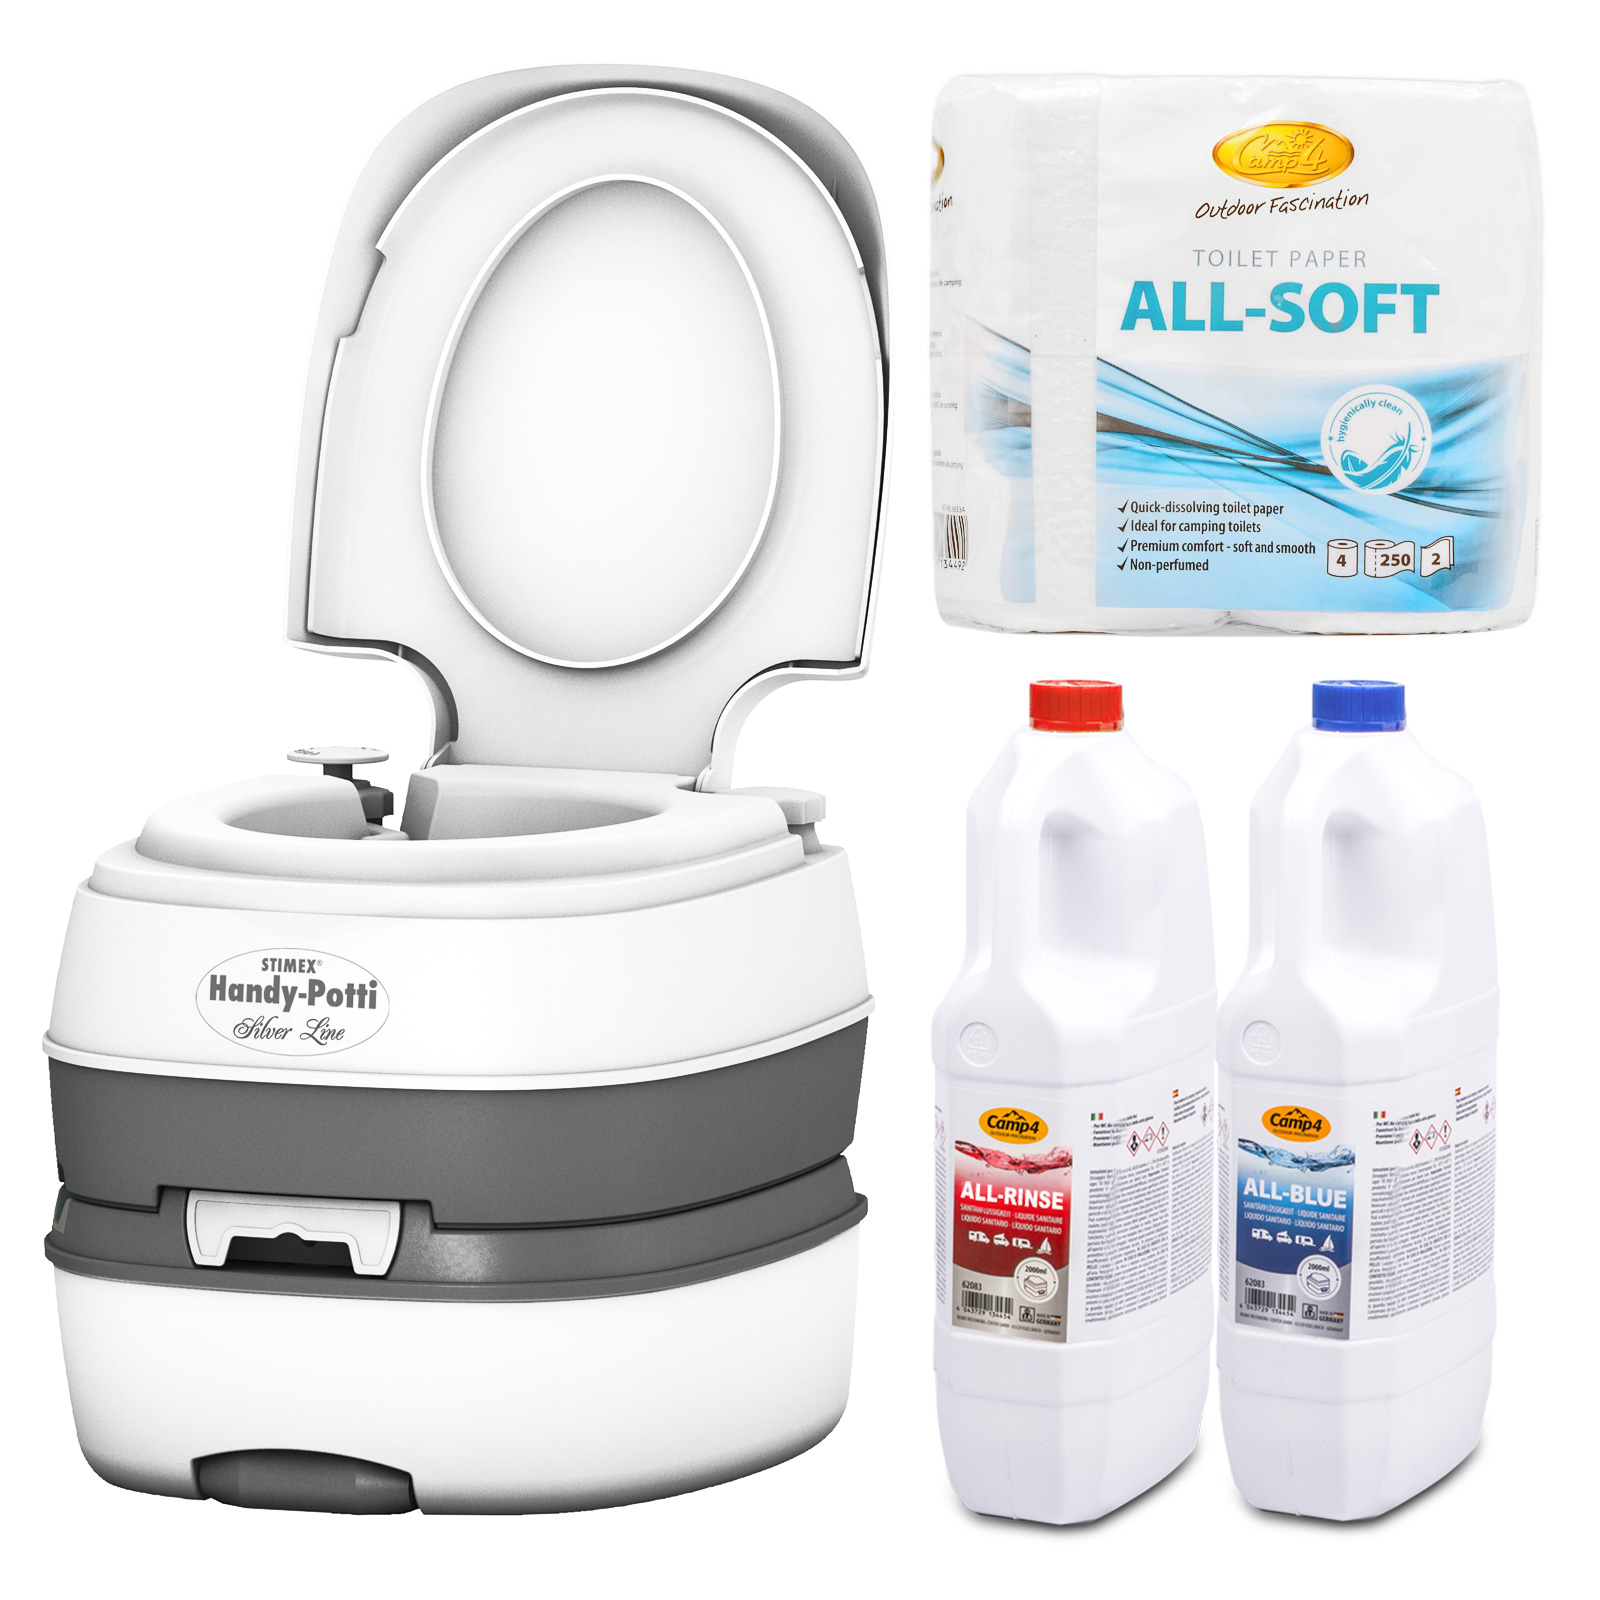 STIMEX Campingtoilette + All-Soft + All Rinse + All Blue